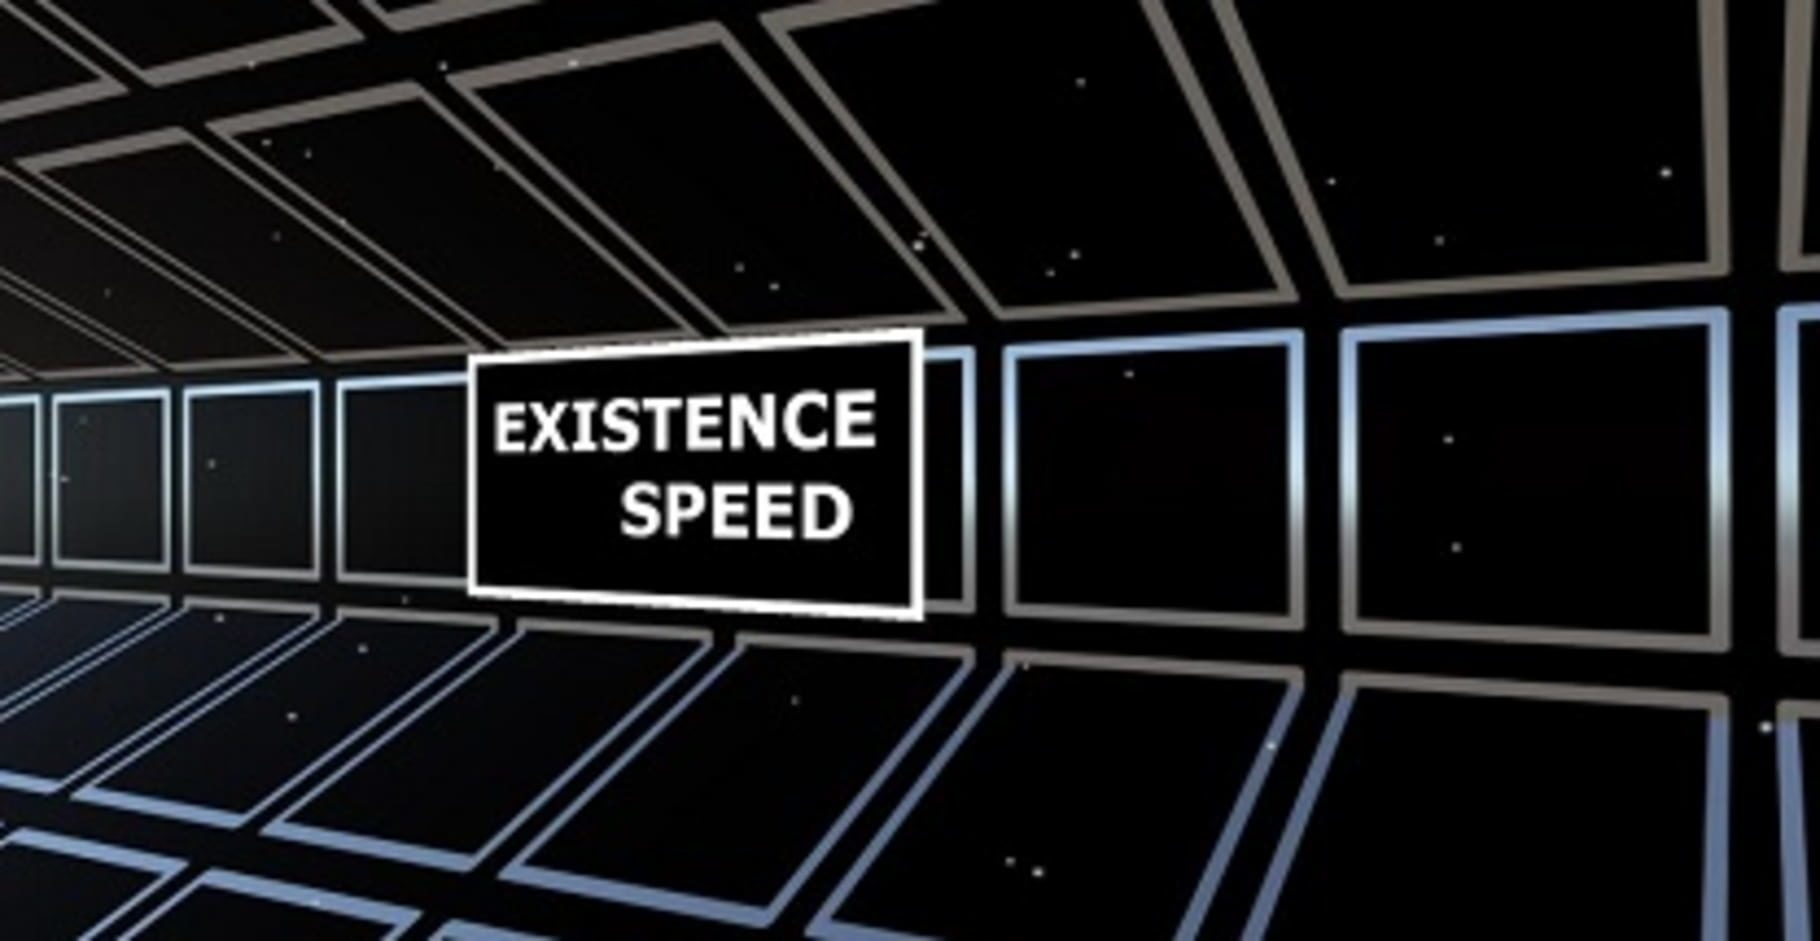 buy Existence speed cd key for all platform